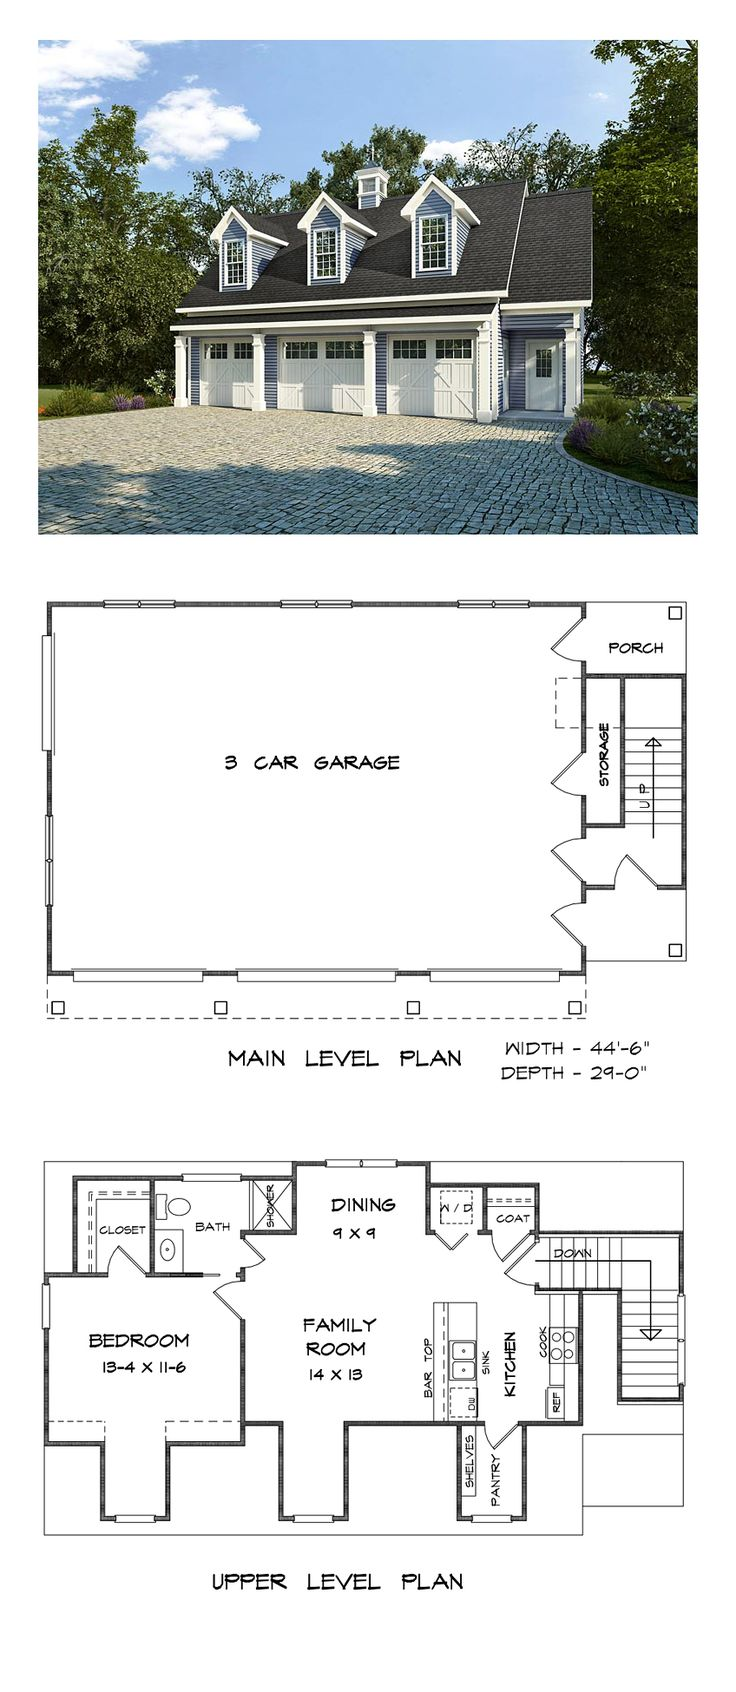 Garage Apartment Plan 58248 | Total Living Area: 1812 sq. ft., 1 bedroom and one 3/4 bathroom. #carriagehouse